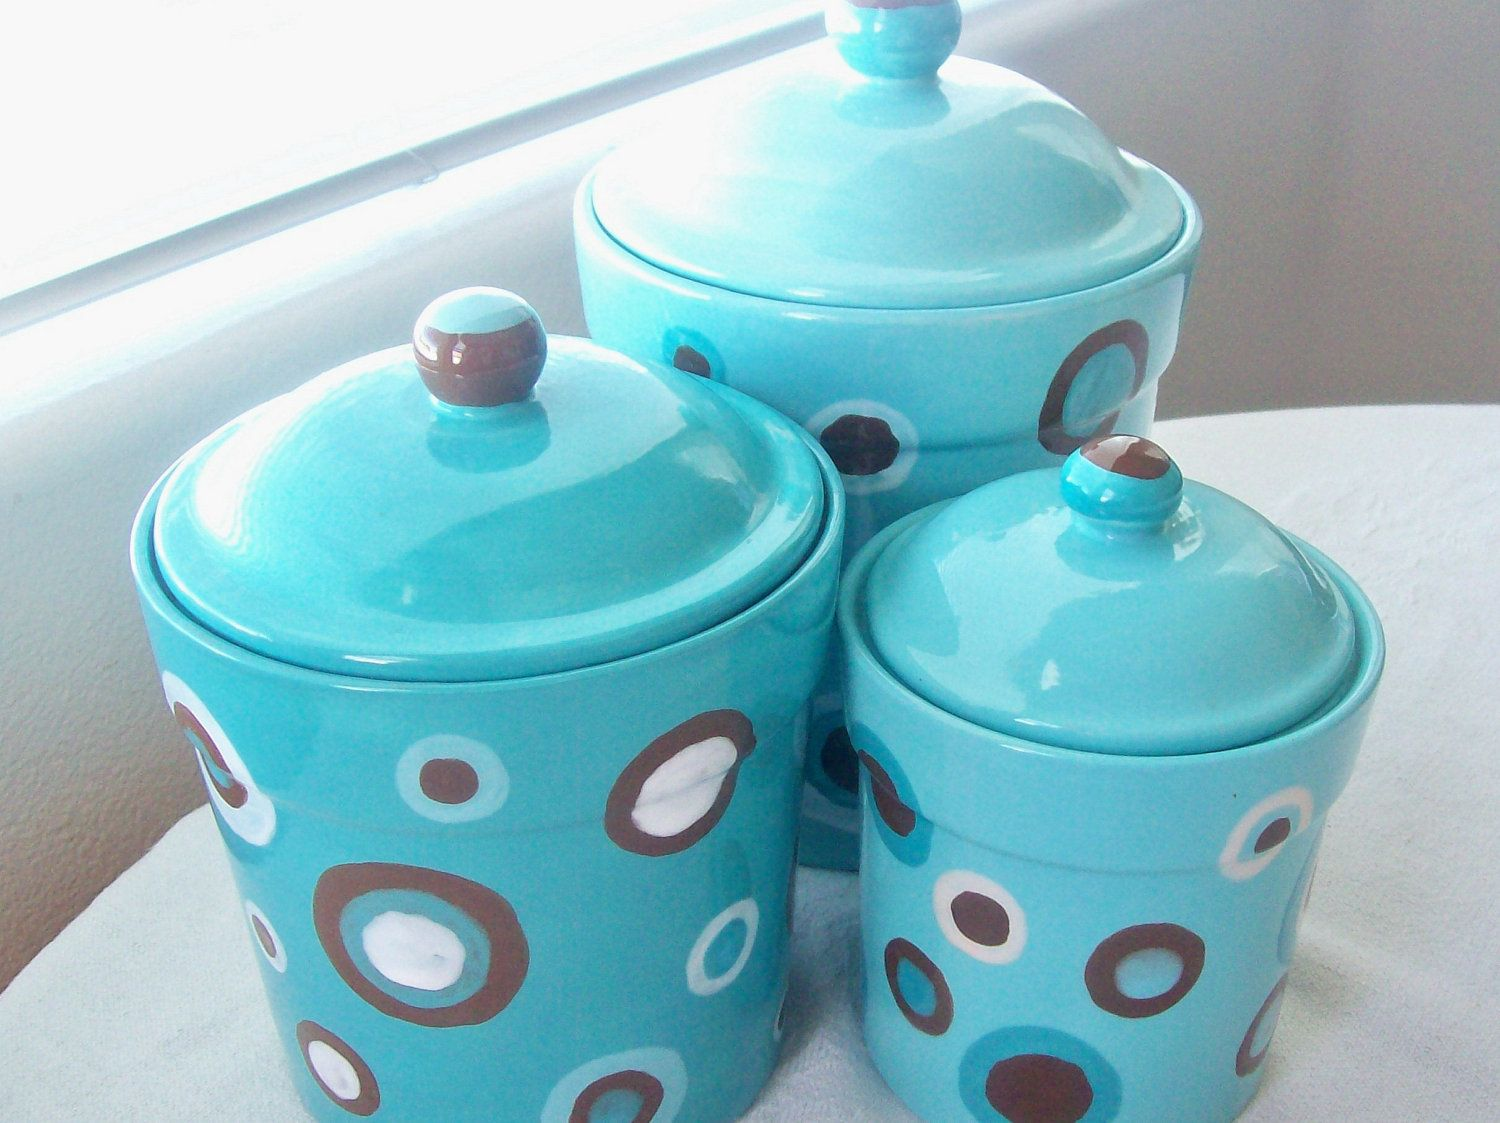 Handpainted Pottery Canister Set | Pinterest | Canister sets ...